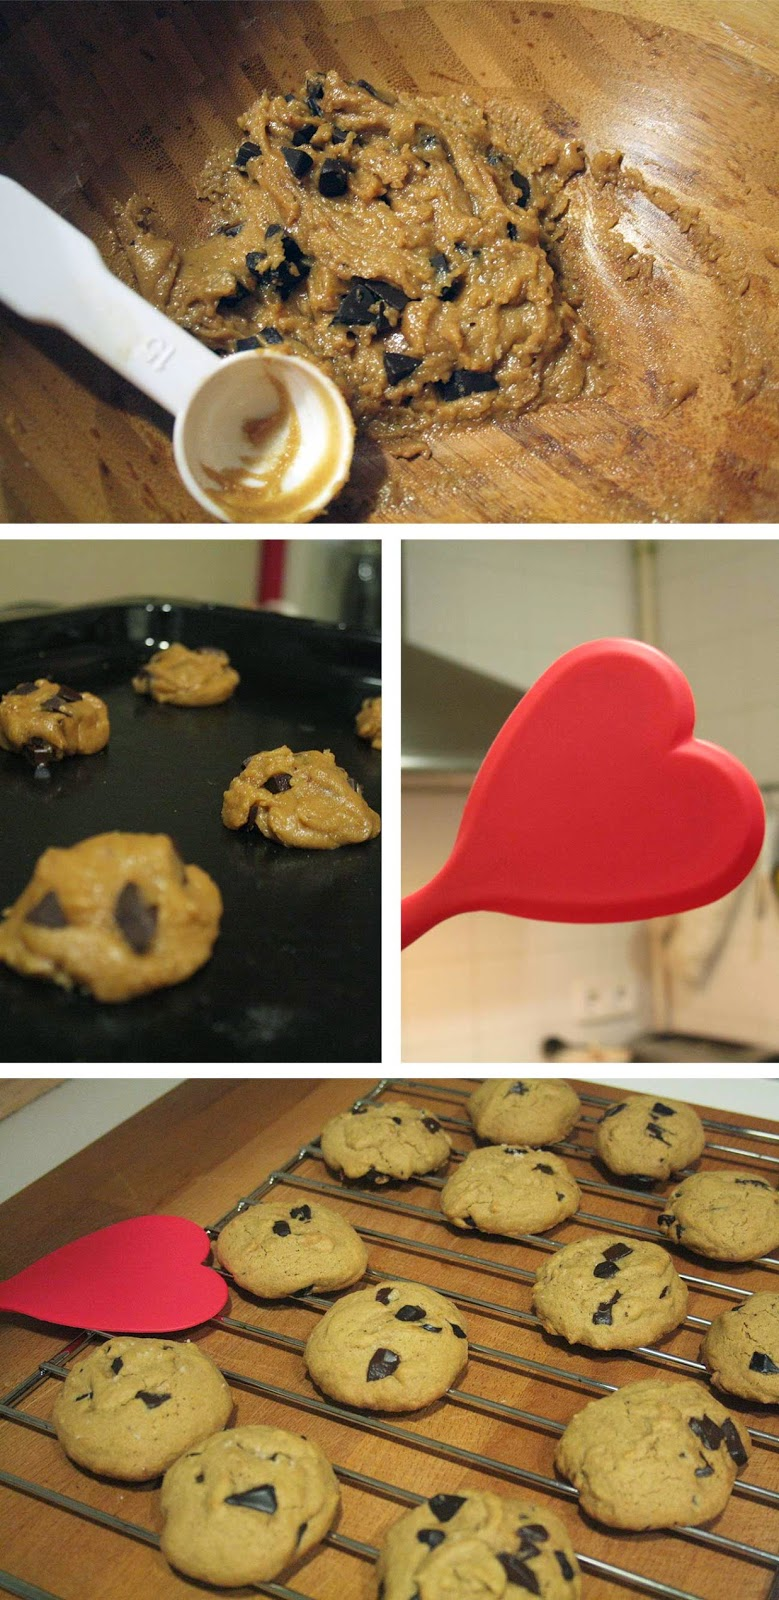 Coconut Oil Dark Chocolate Chip Cookies on the Making